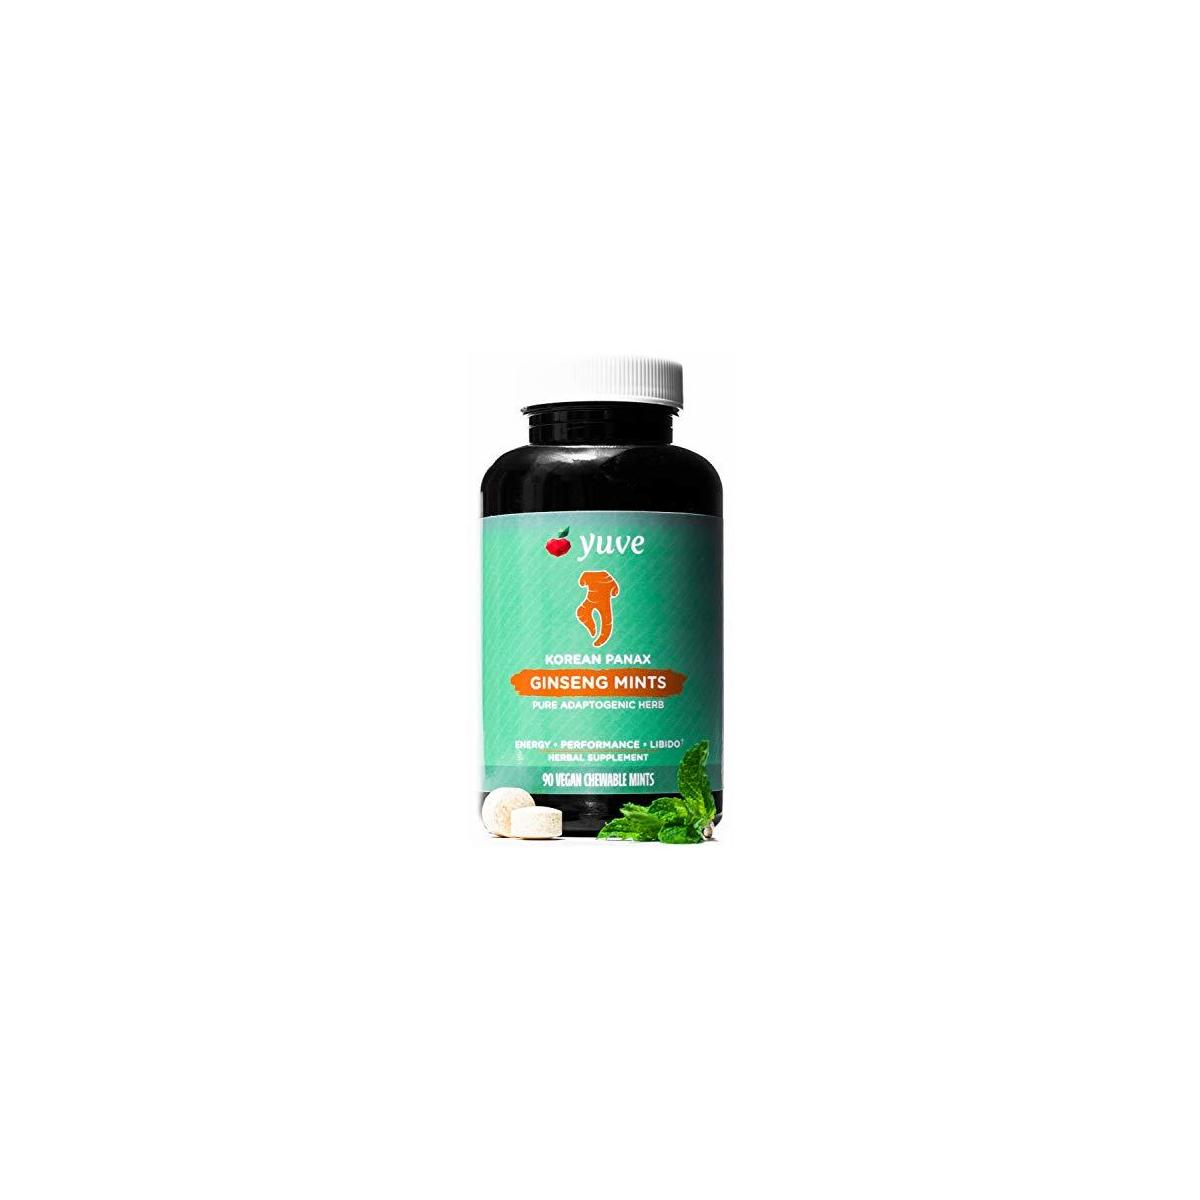 Yuve Korean Red Panax Ginseng Mints 1000mg - Performance, Mental Health & Energy Booster - High Ginsenosides Extra Strength Root Extract Powder - Natural Supplement, Non-GMO - 90 Vegan Chewable